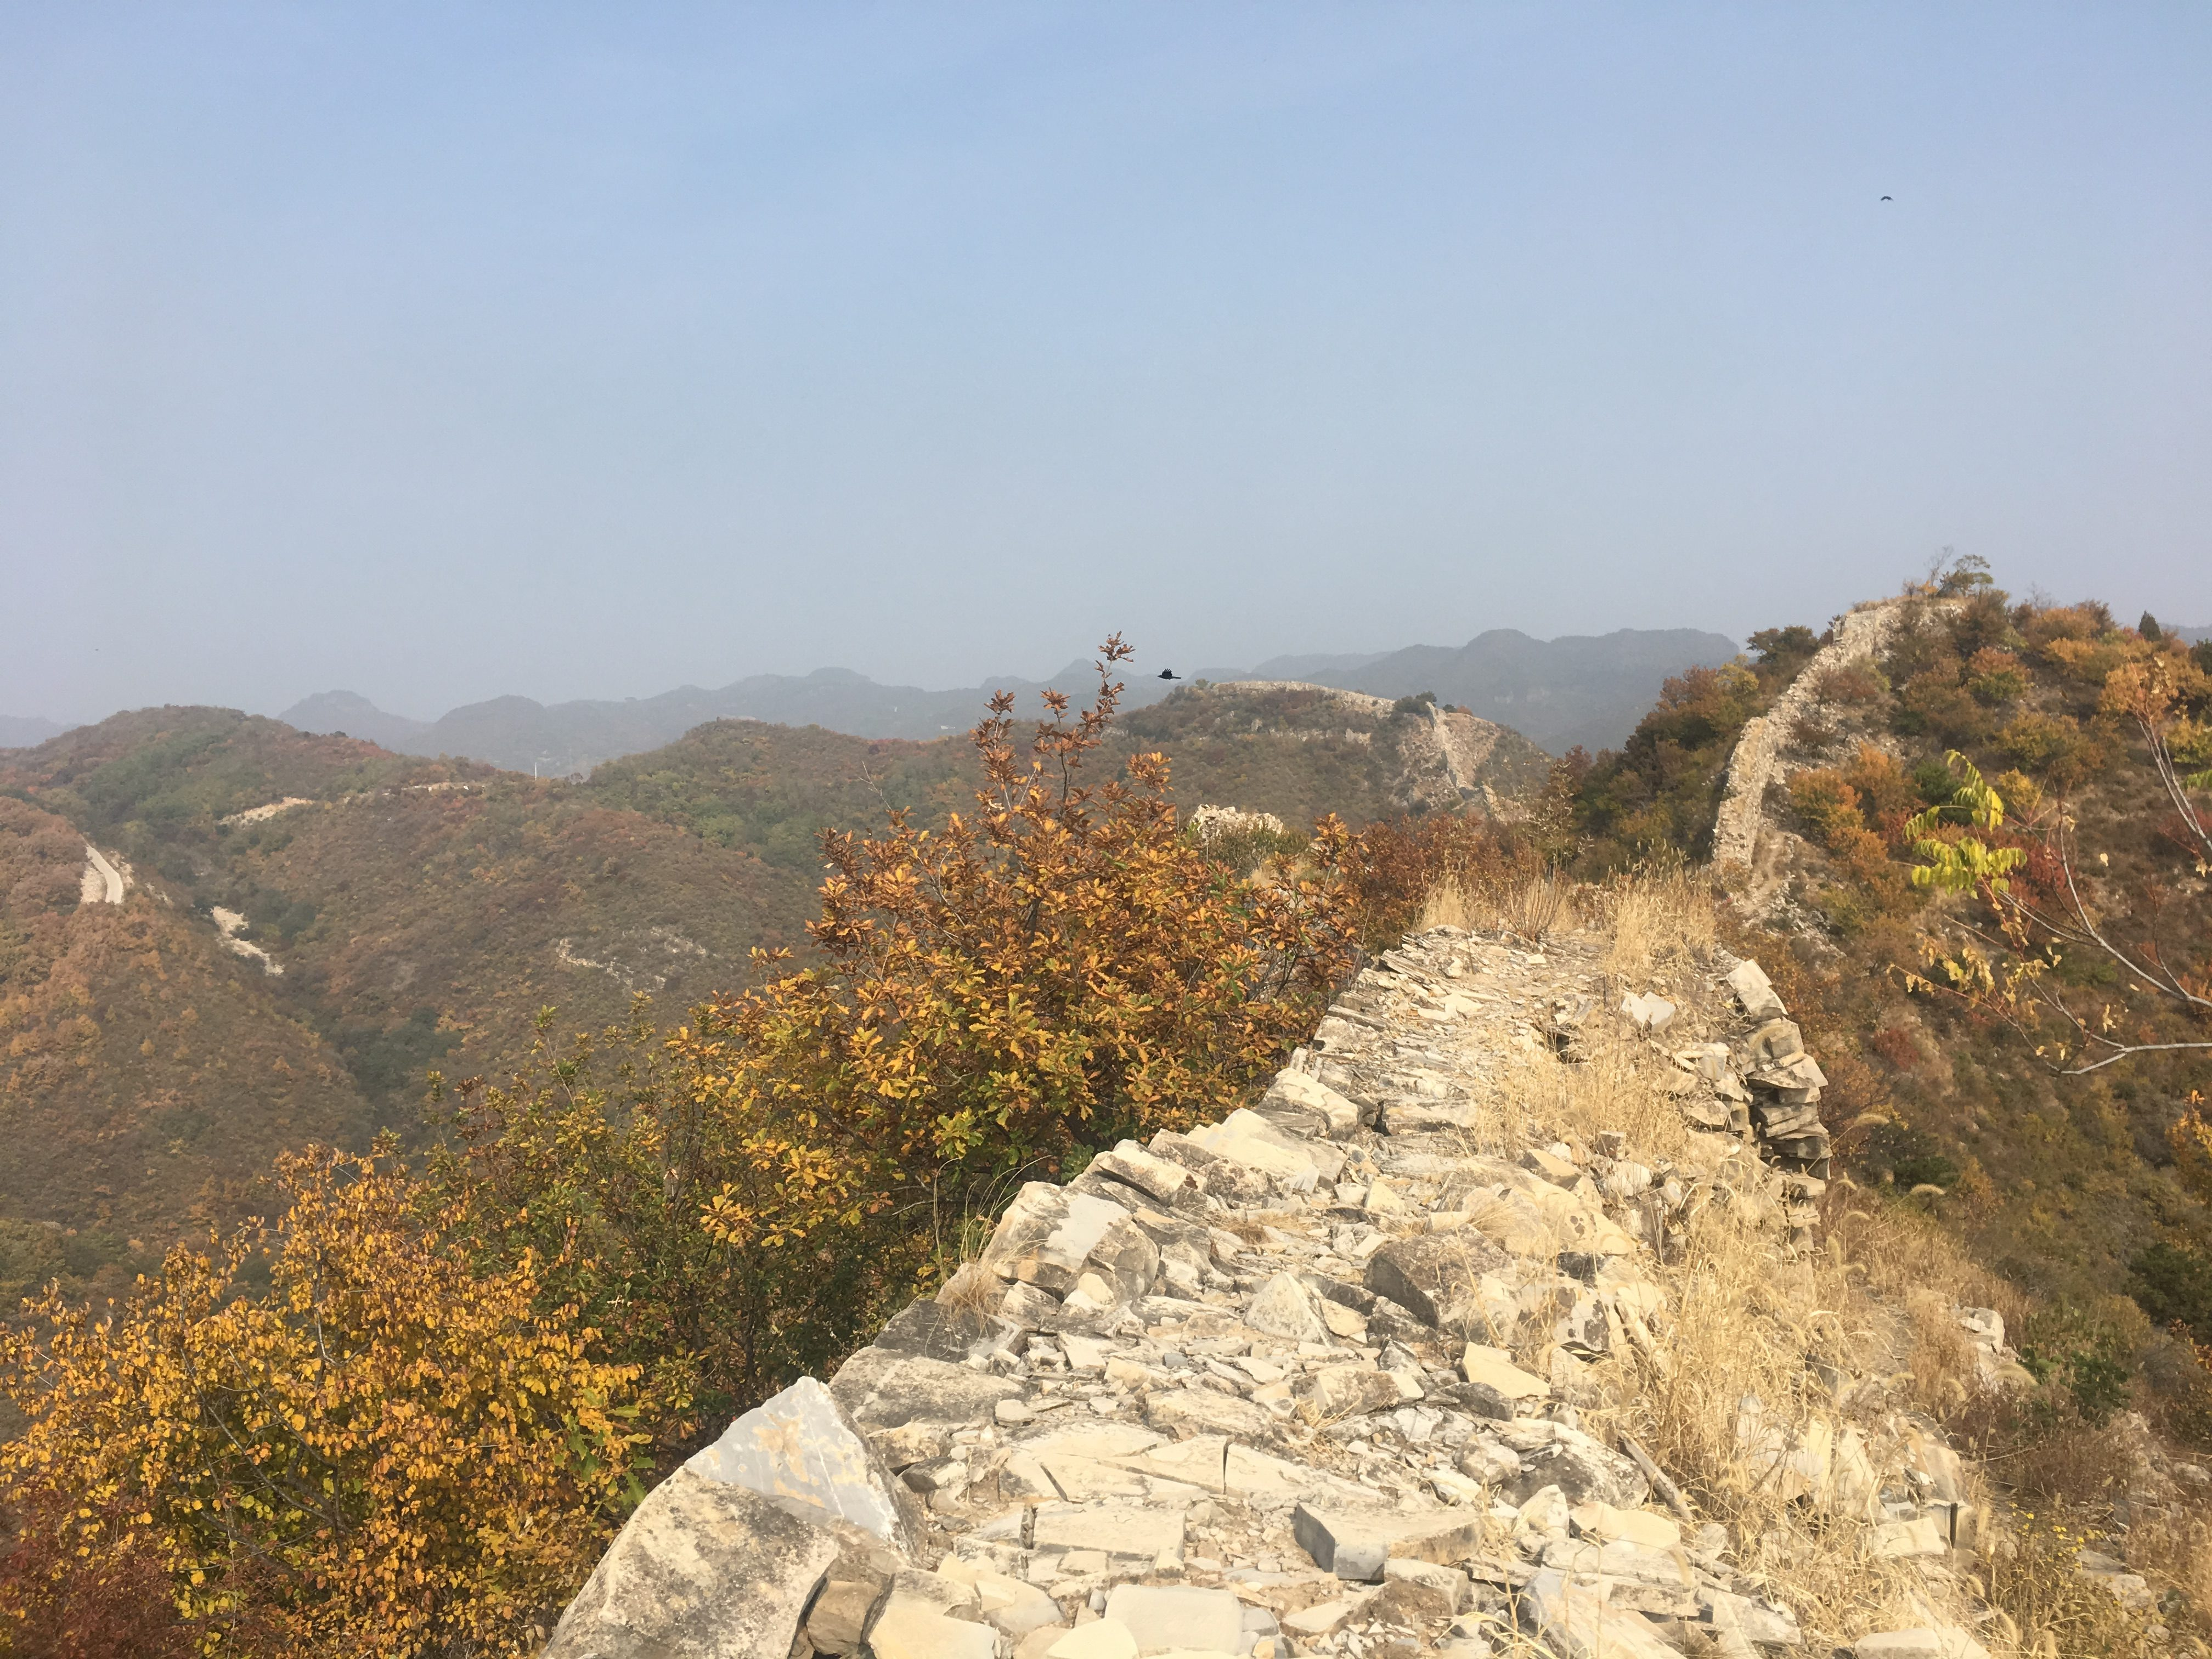 Looking back along the Great Wall track